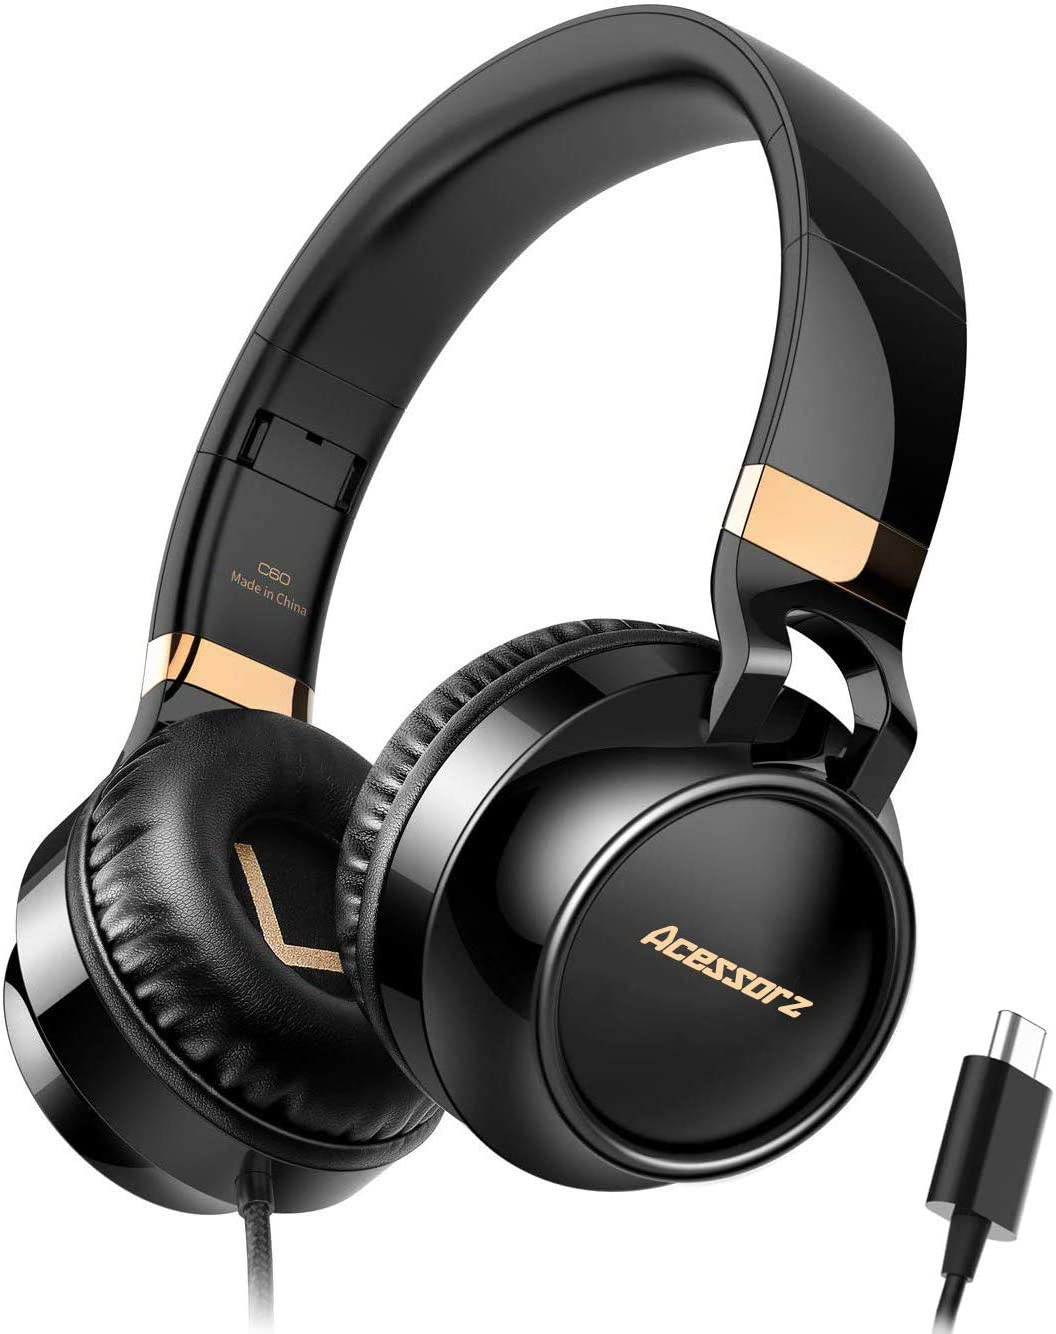 USB C Headphones Over Ear, Acessorz Type-c Wired Over-Ear Noise Cancelling HiFi Stereo Headphones Earphones w Mic for iPad Pro 2018, New MacBook, Dell Xps, Google and Samsung Type-c Devices – Black